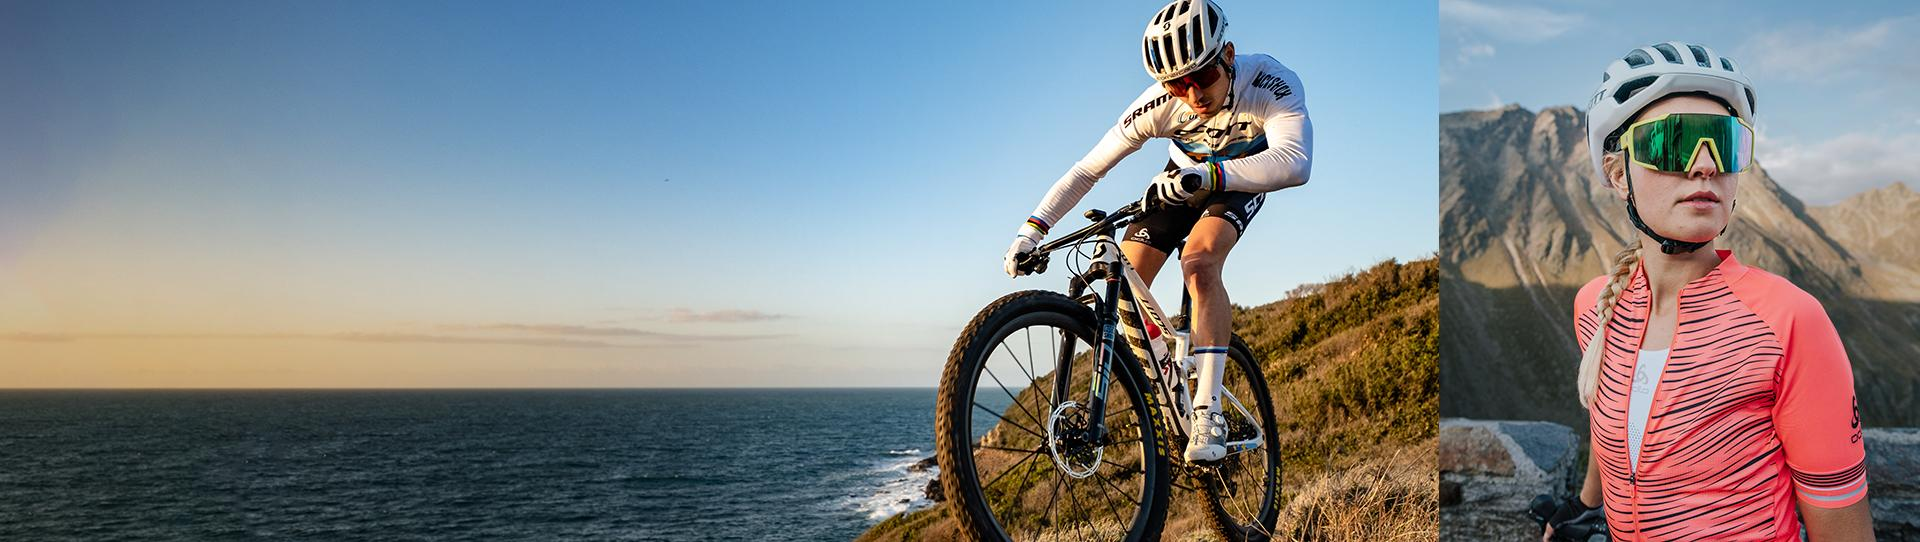 Pave your own way. Get the perfect cycling gear for every journey.